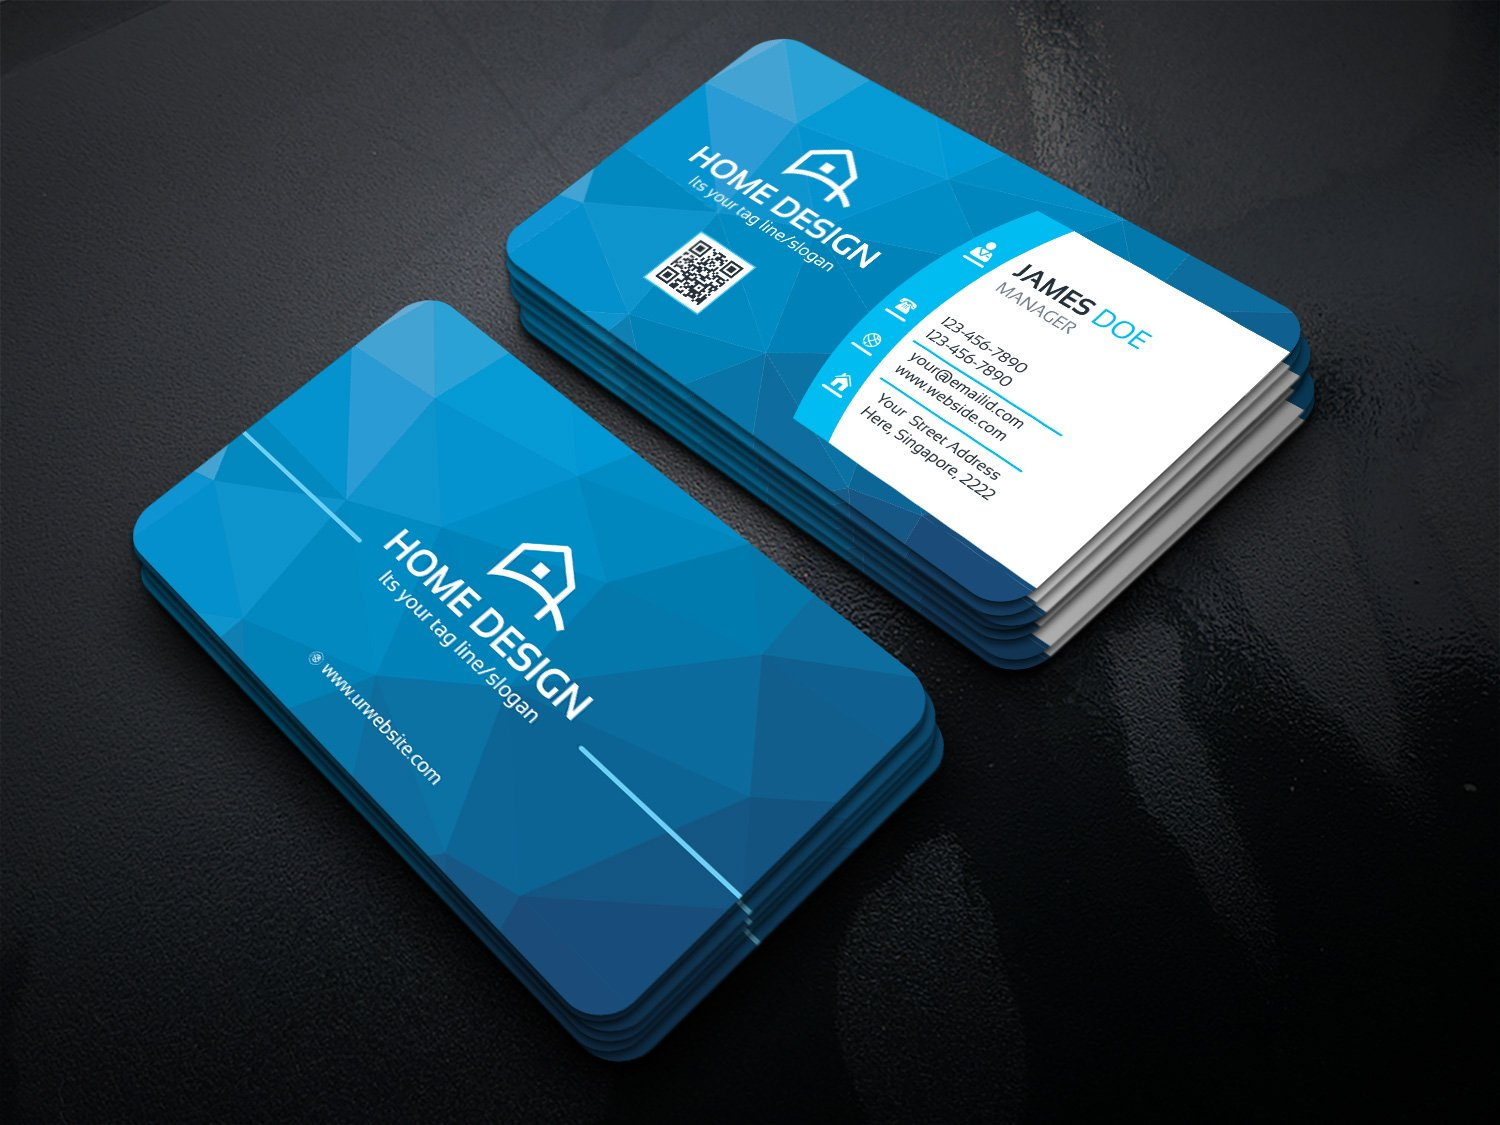 Home Design Business Card ~ Business Card Templates ~ Creative Market